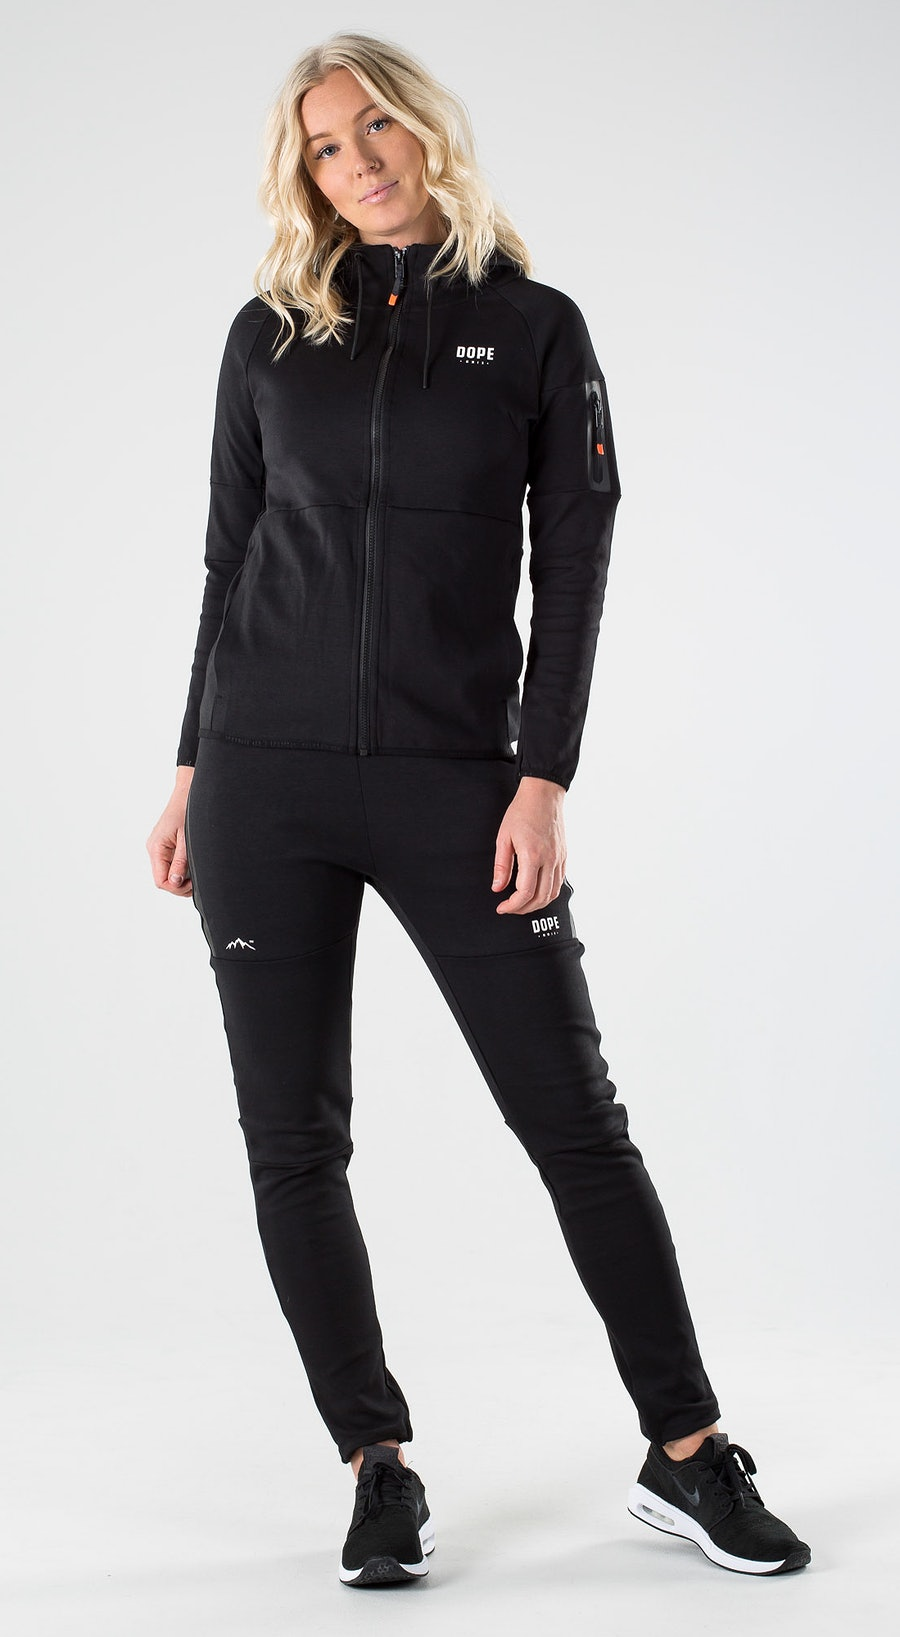 Dope Ronin 2X-UP Zip W Black Outfit Multi